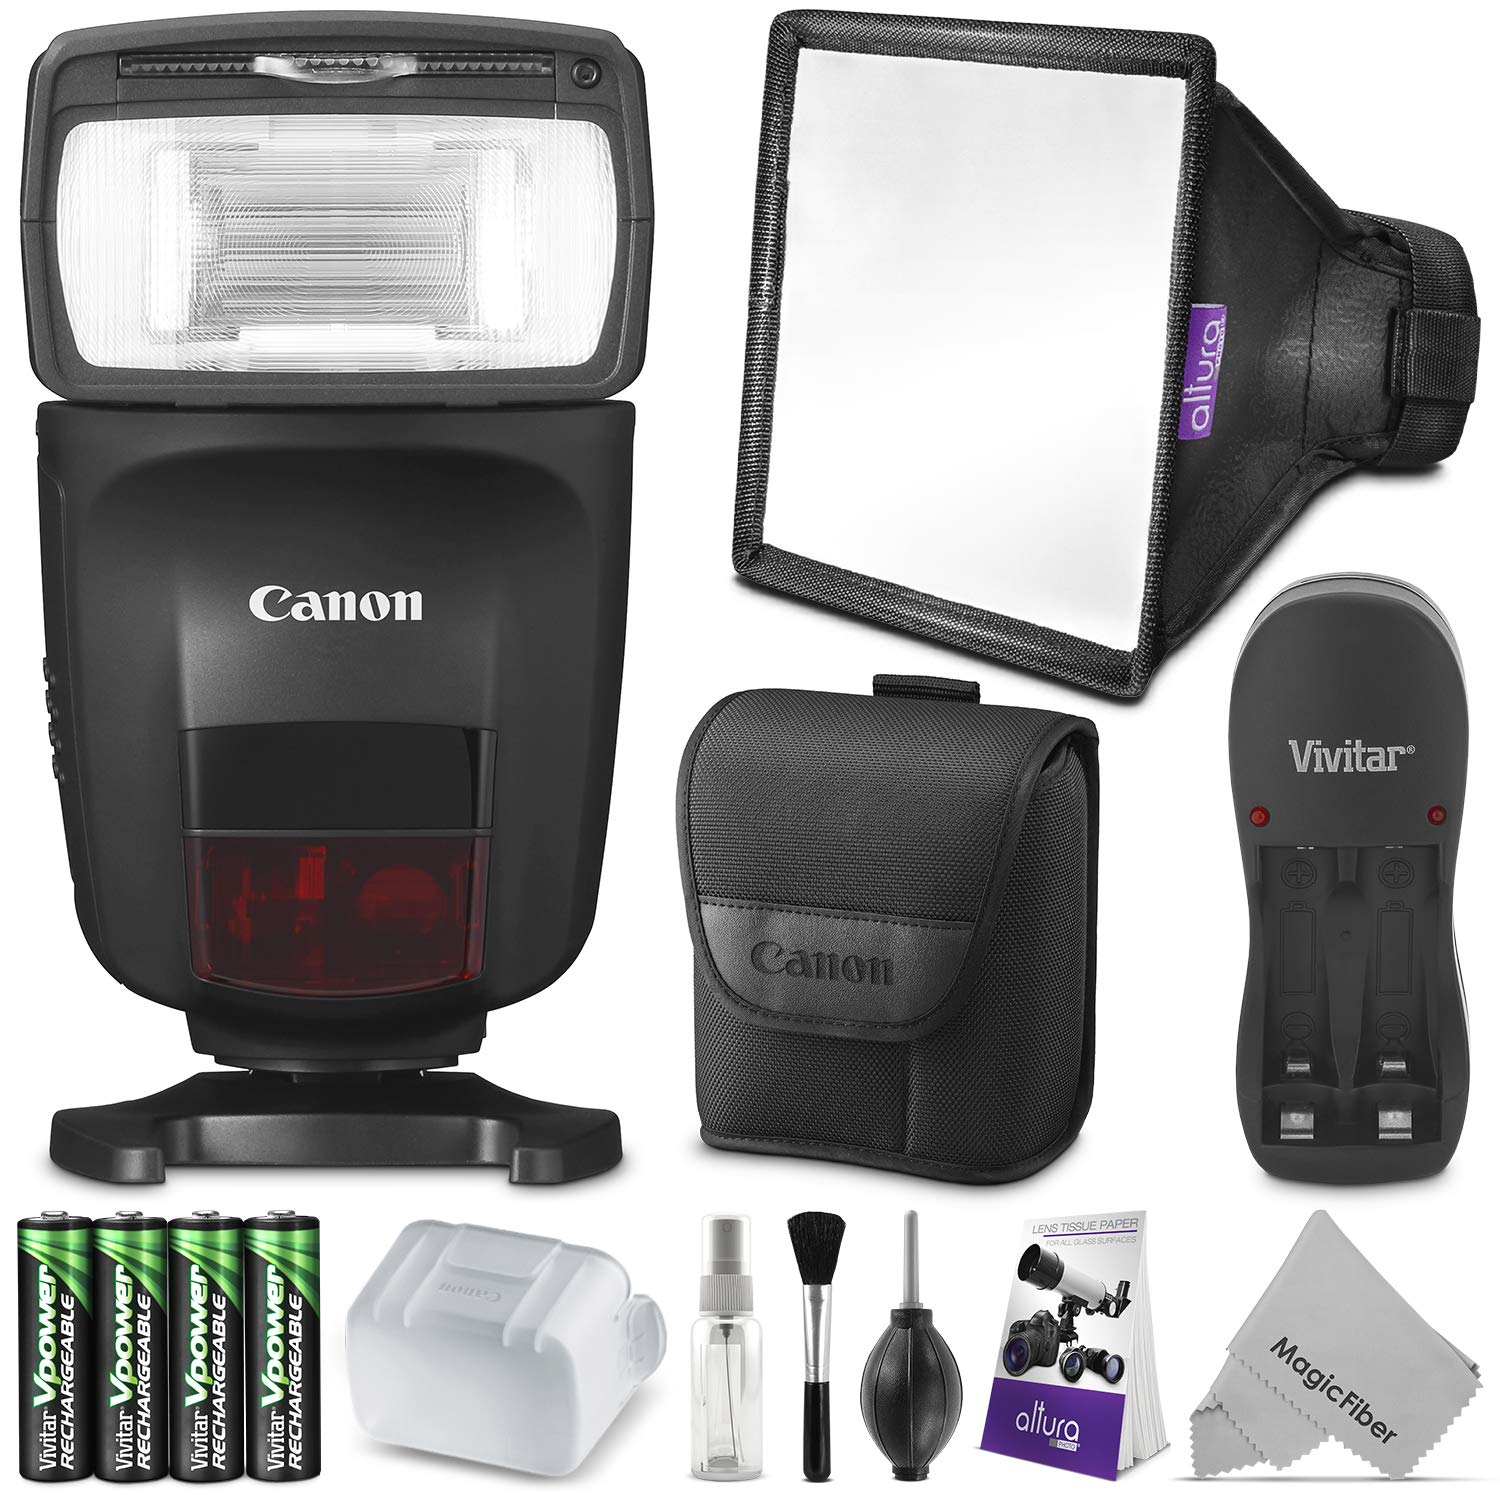 Canon Speedlite 470EX-AI w/Essential Photo Bundle - Includes: Altura Photo Softbox Flash Diffuser, AA Rechargeable Batteries w/Charger